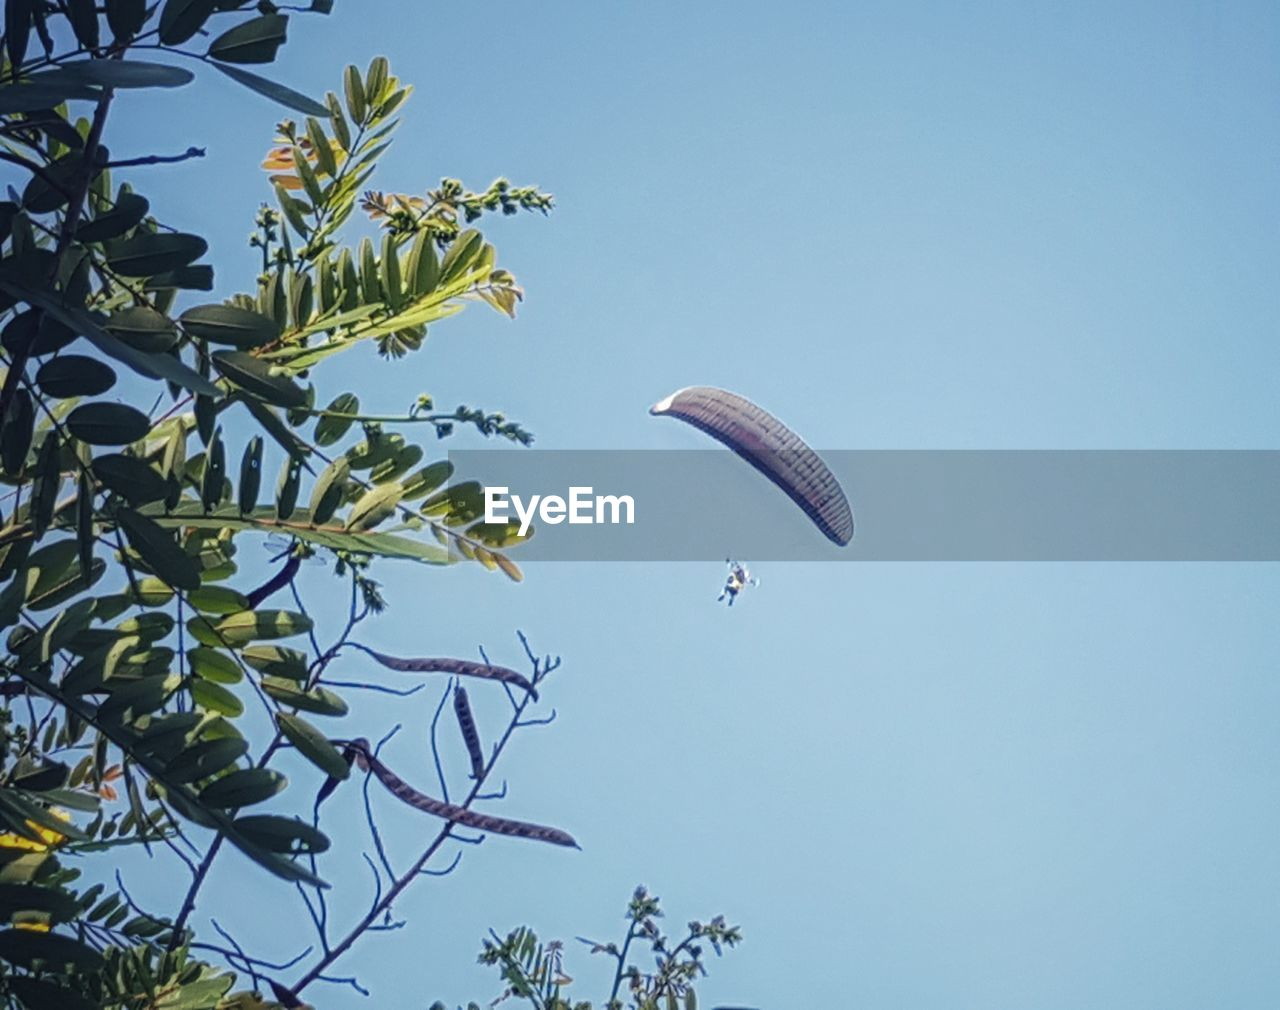 plant, sky, low angle view, parachute, tree, adventure, flying, extreme sports, mid-air, day, clear sky, nature, paragliding, sport, growth, beauty in nature, blue, outdoors, transportation, green color